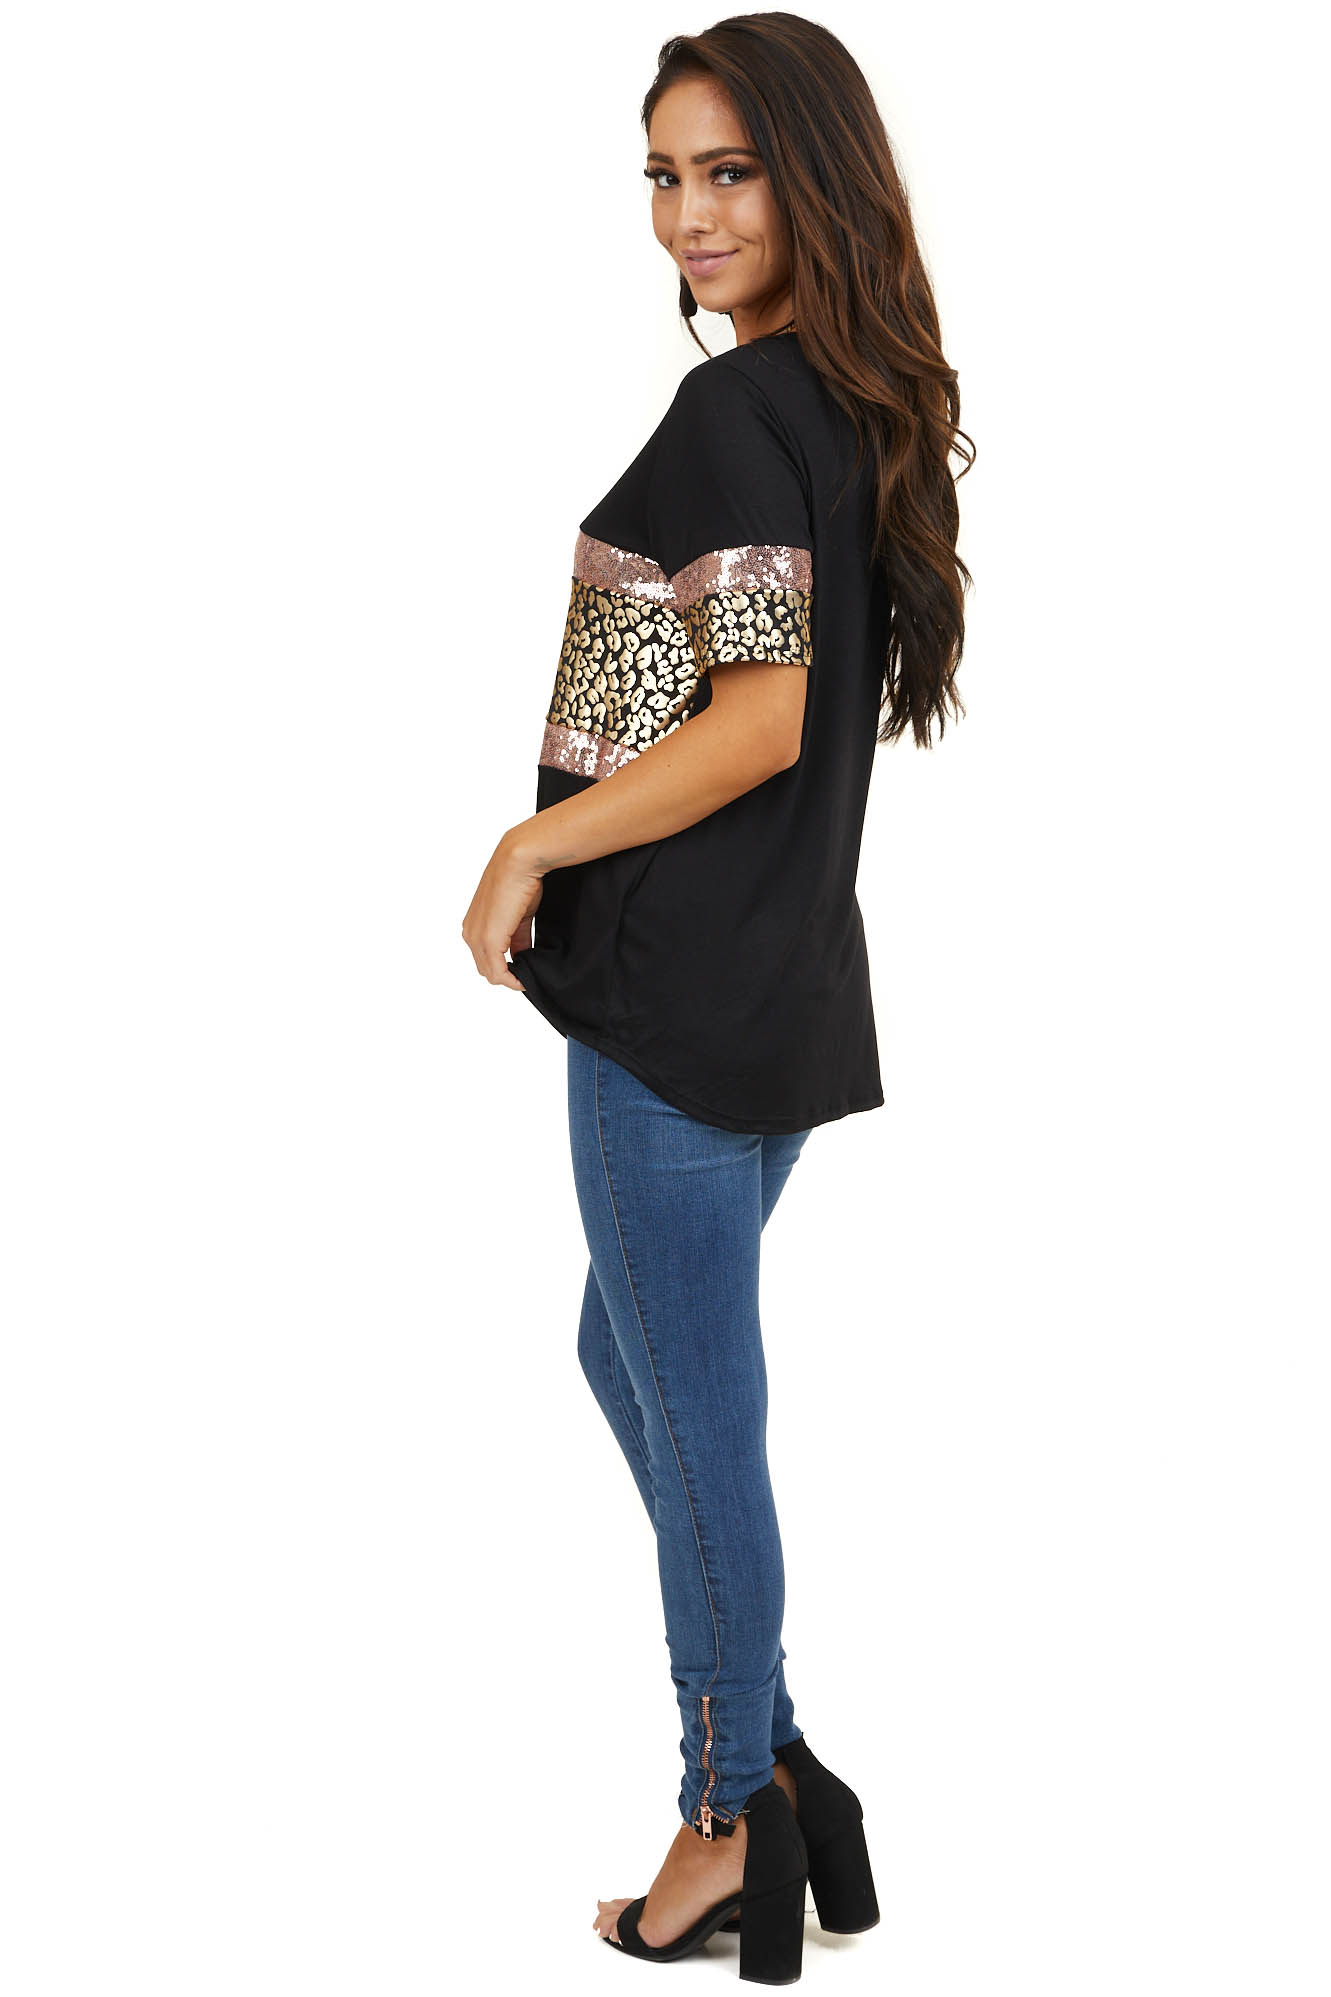 Black Top with Gold Leopard Print and Blush Sequin Stripes